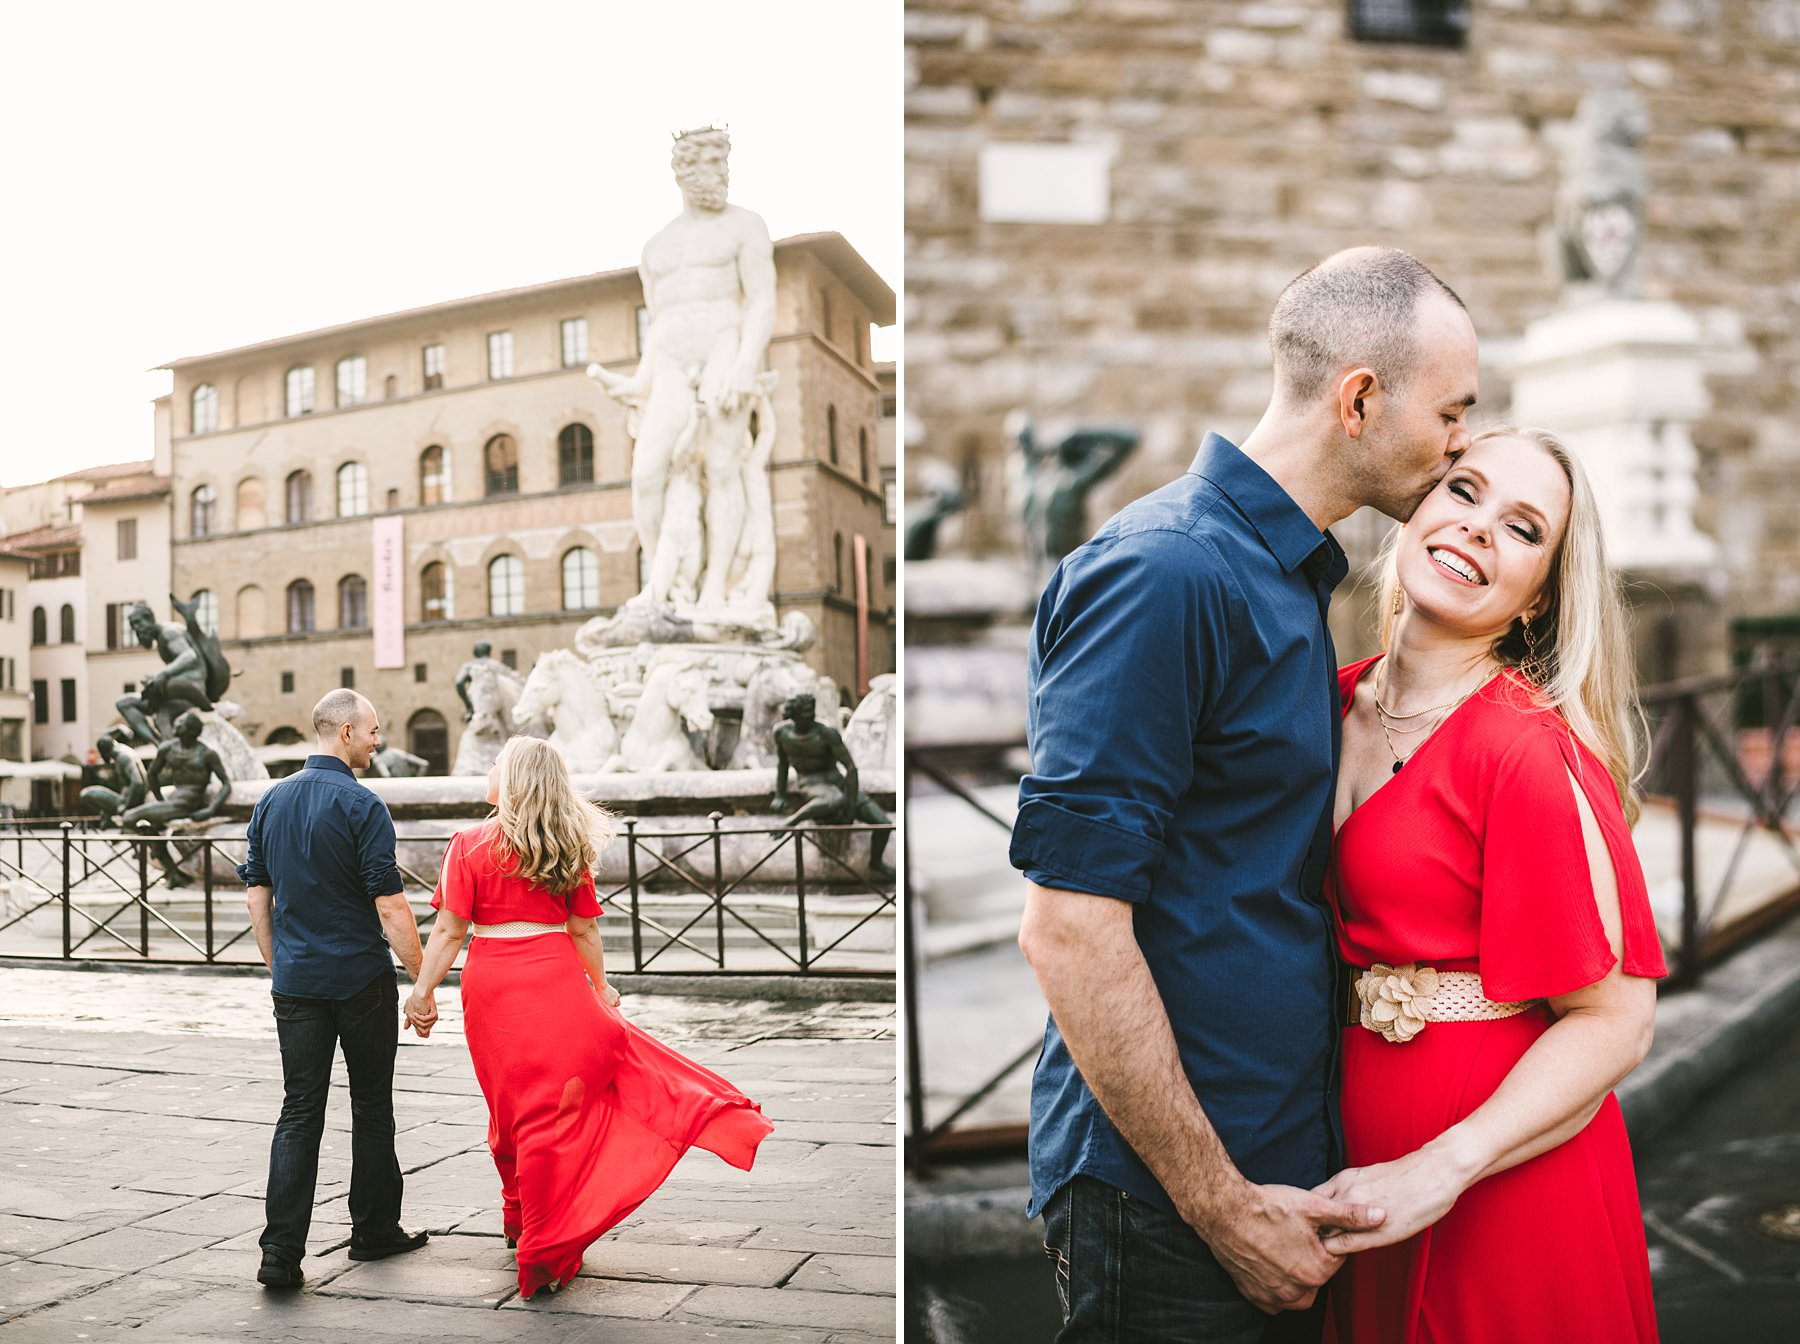 Anisa and Kevin's delightful anniversary photos. We strolled the streets of the city, during a session that lasted almost three hours and touched all of the most iconic spots: from Piazza della Signoria to the Uffizi Gallery, from Palazzo Gondi to Piazza S. Firenze, from Ponte Vecchio to Piazzale Michelangelo. The latter is a truly enchanted place from which you can enjoy a breathtaking view of the city: the most wonderful photo setting anyone could ask for